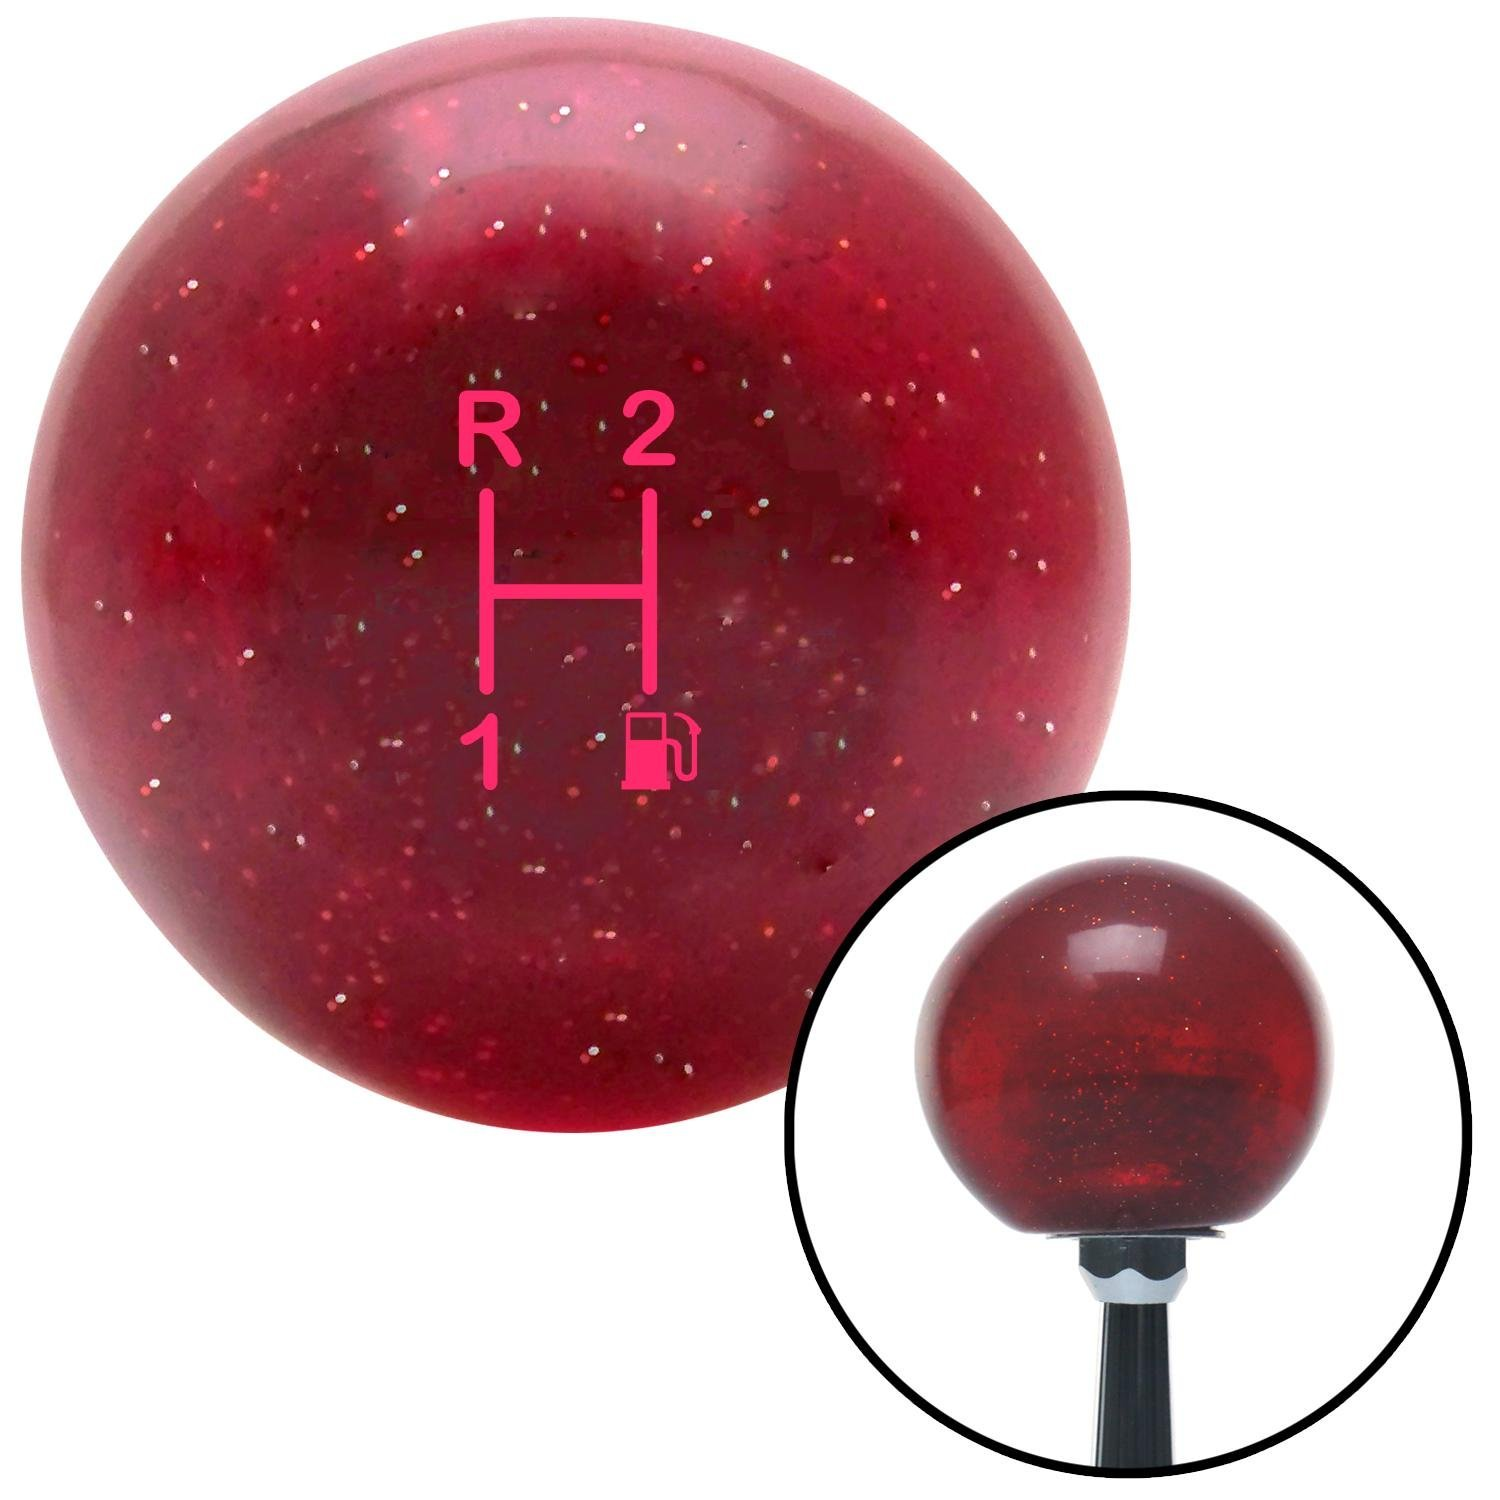 American Shifter 282796 Shift Knob Pink 3 Speed Shift Pattern - Gas 11 Red Metal Flake with M16 x 1.5 Insert